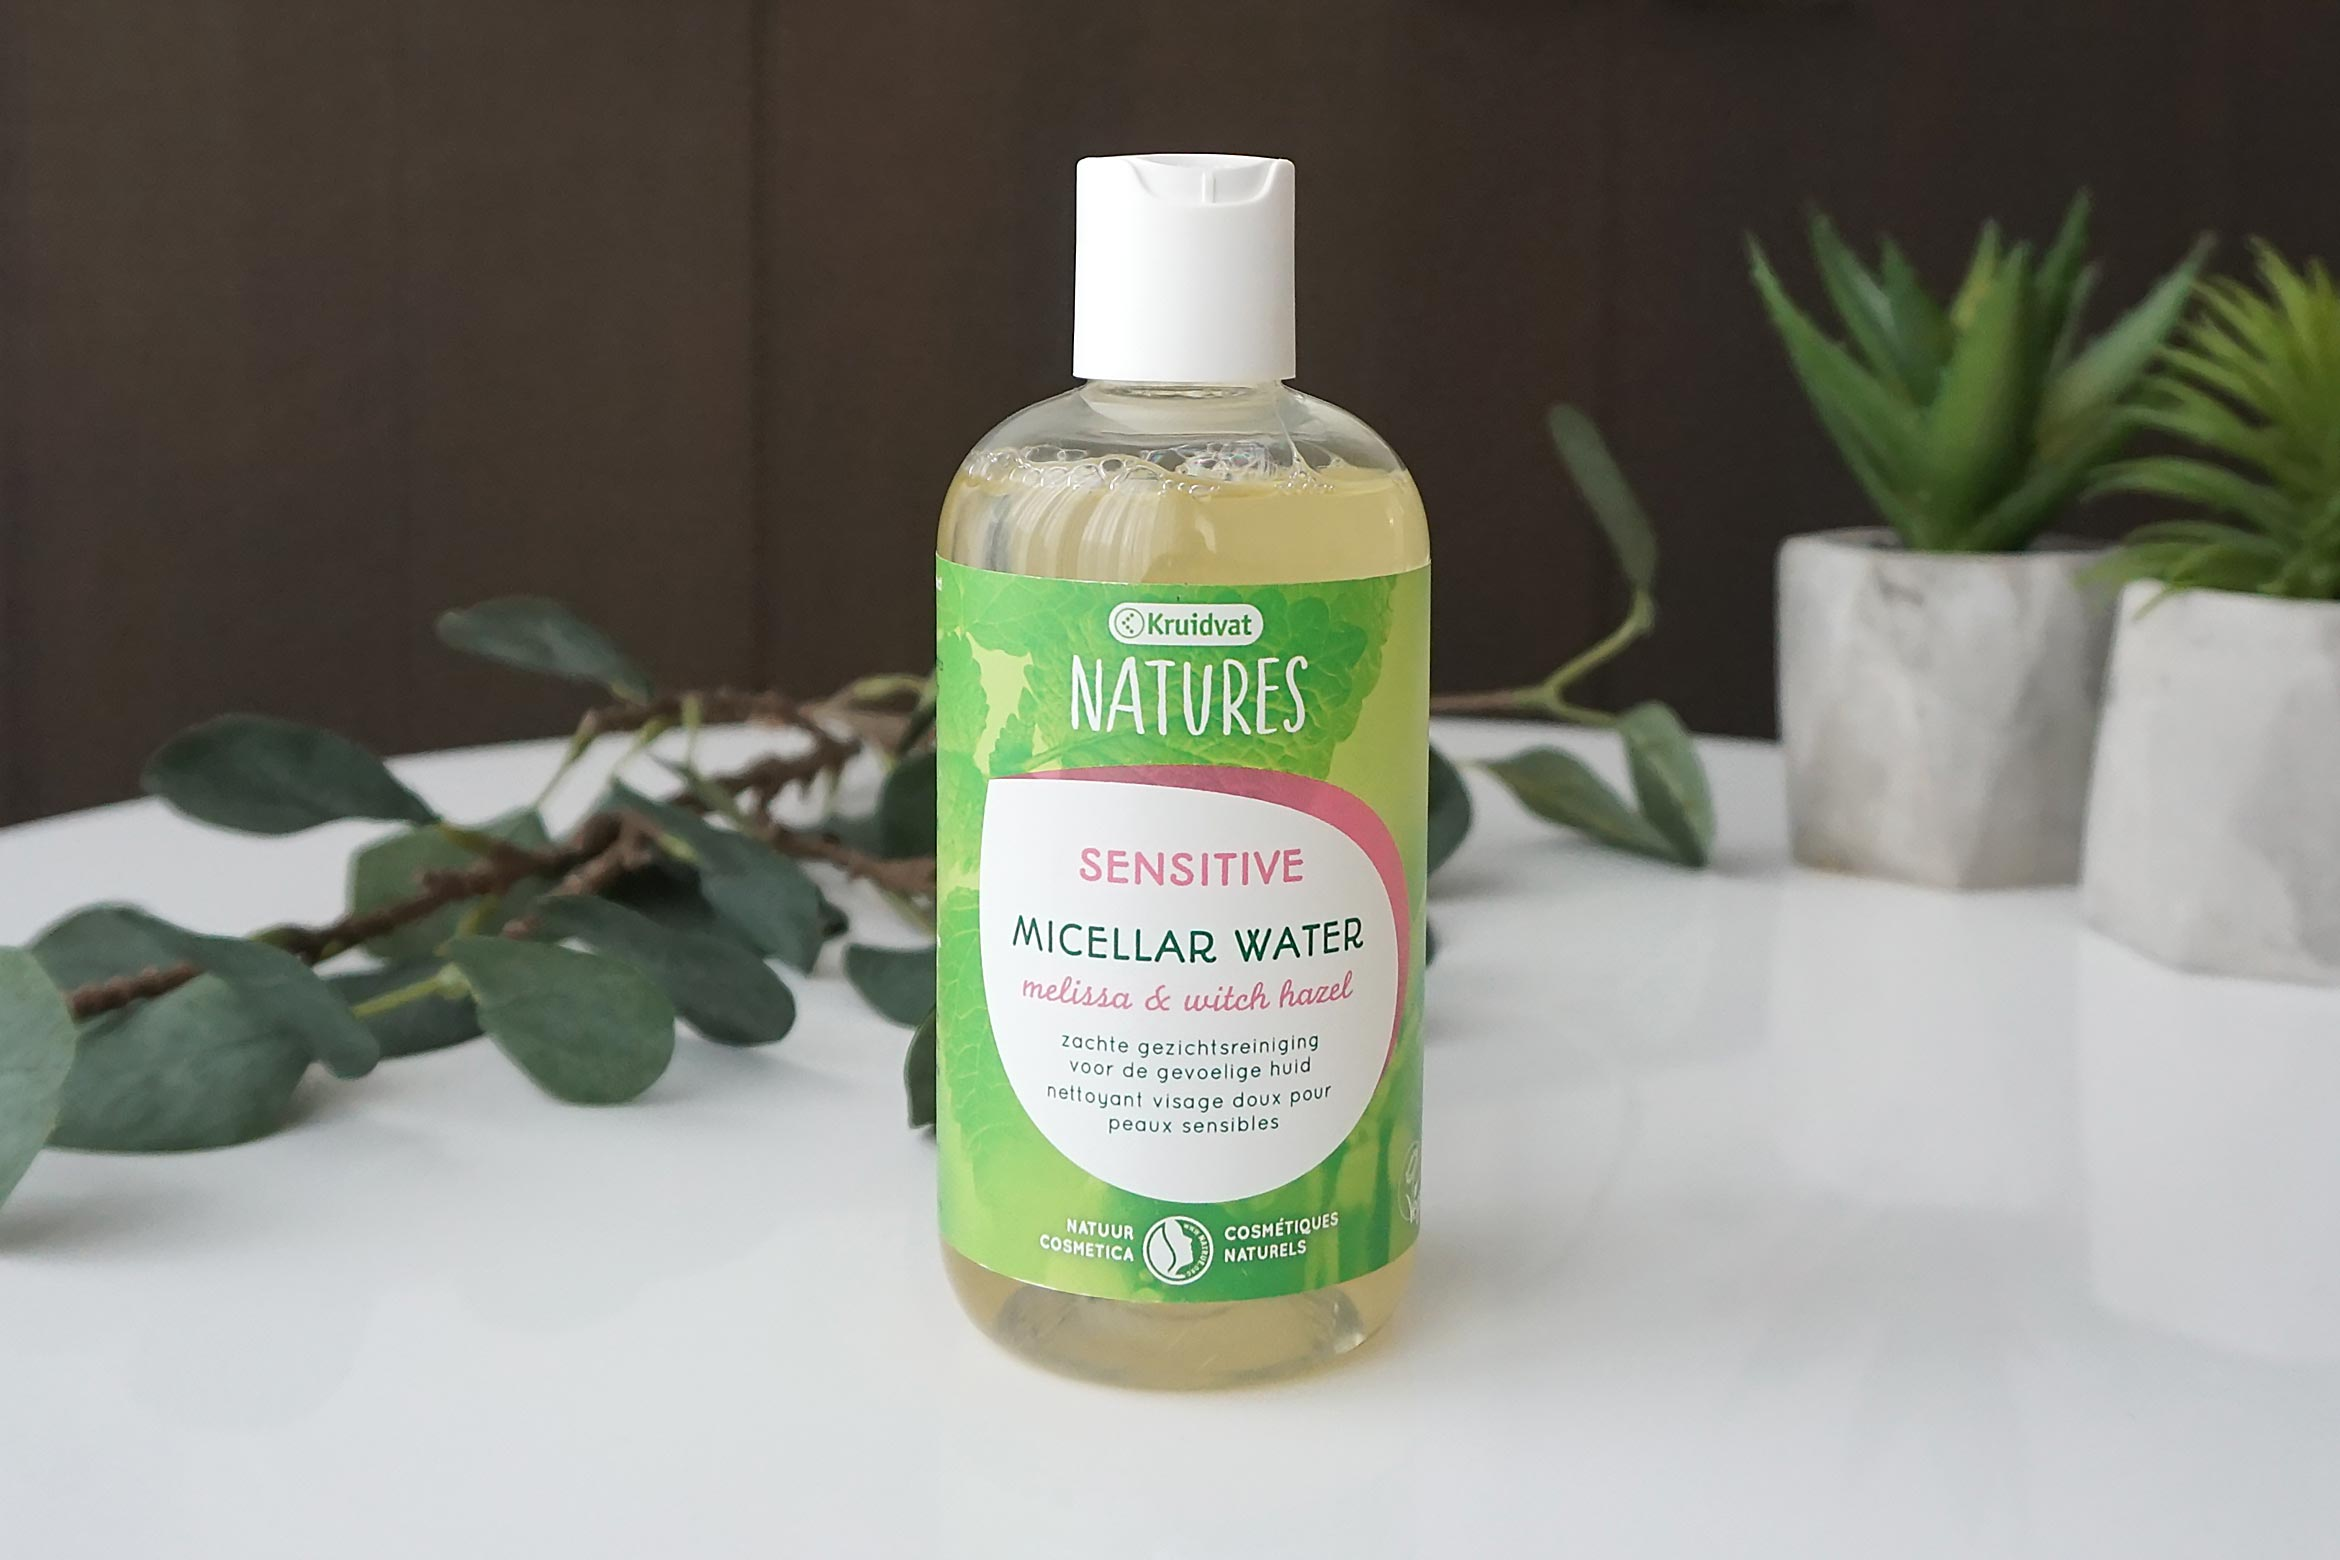 Kruidvat-Natures-Sensitive-Micellair-Water-review-1